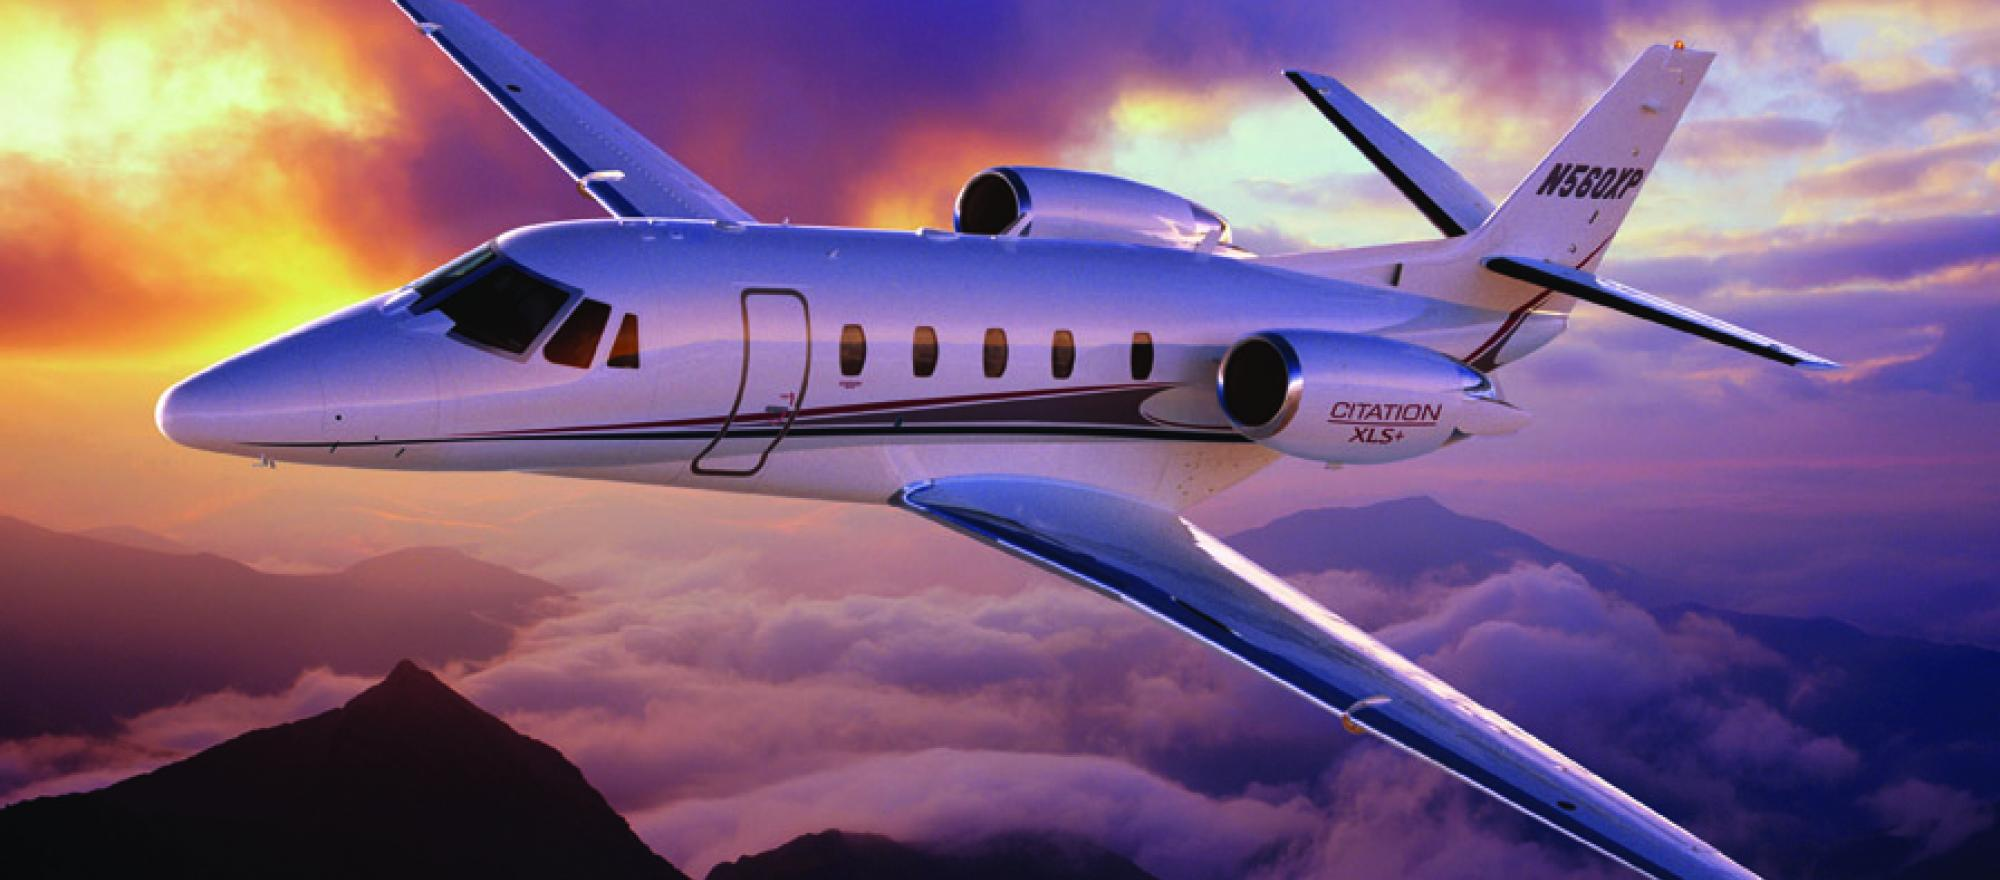 Preowned aircraft annual report